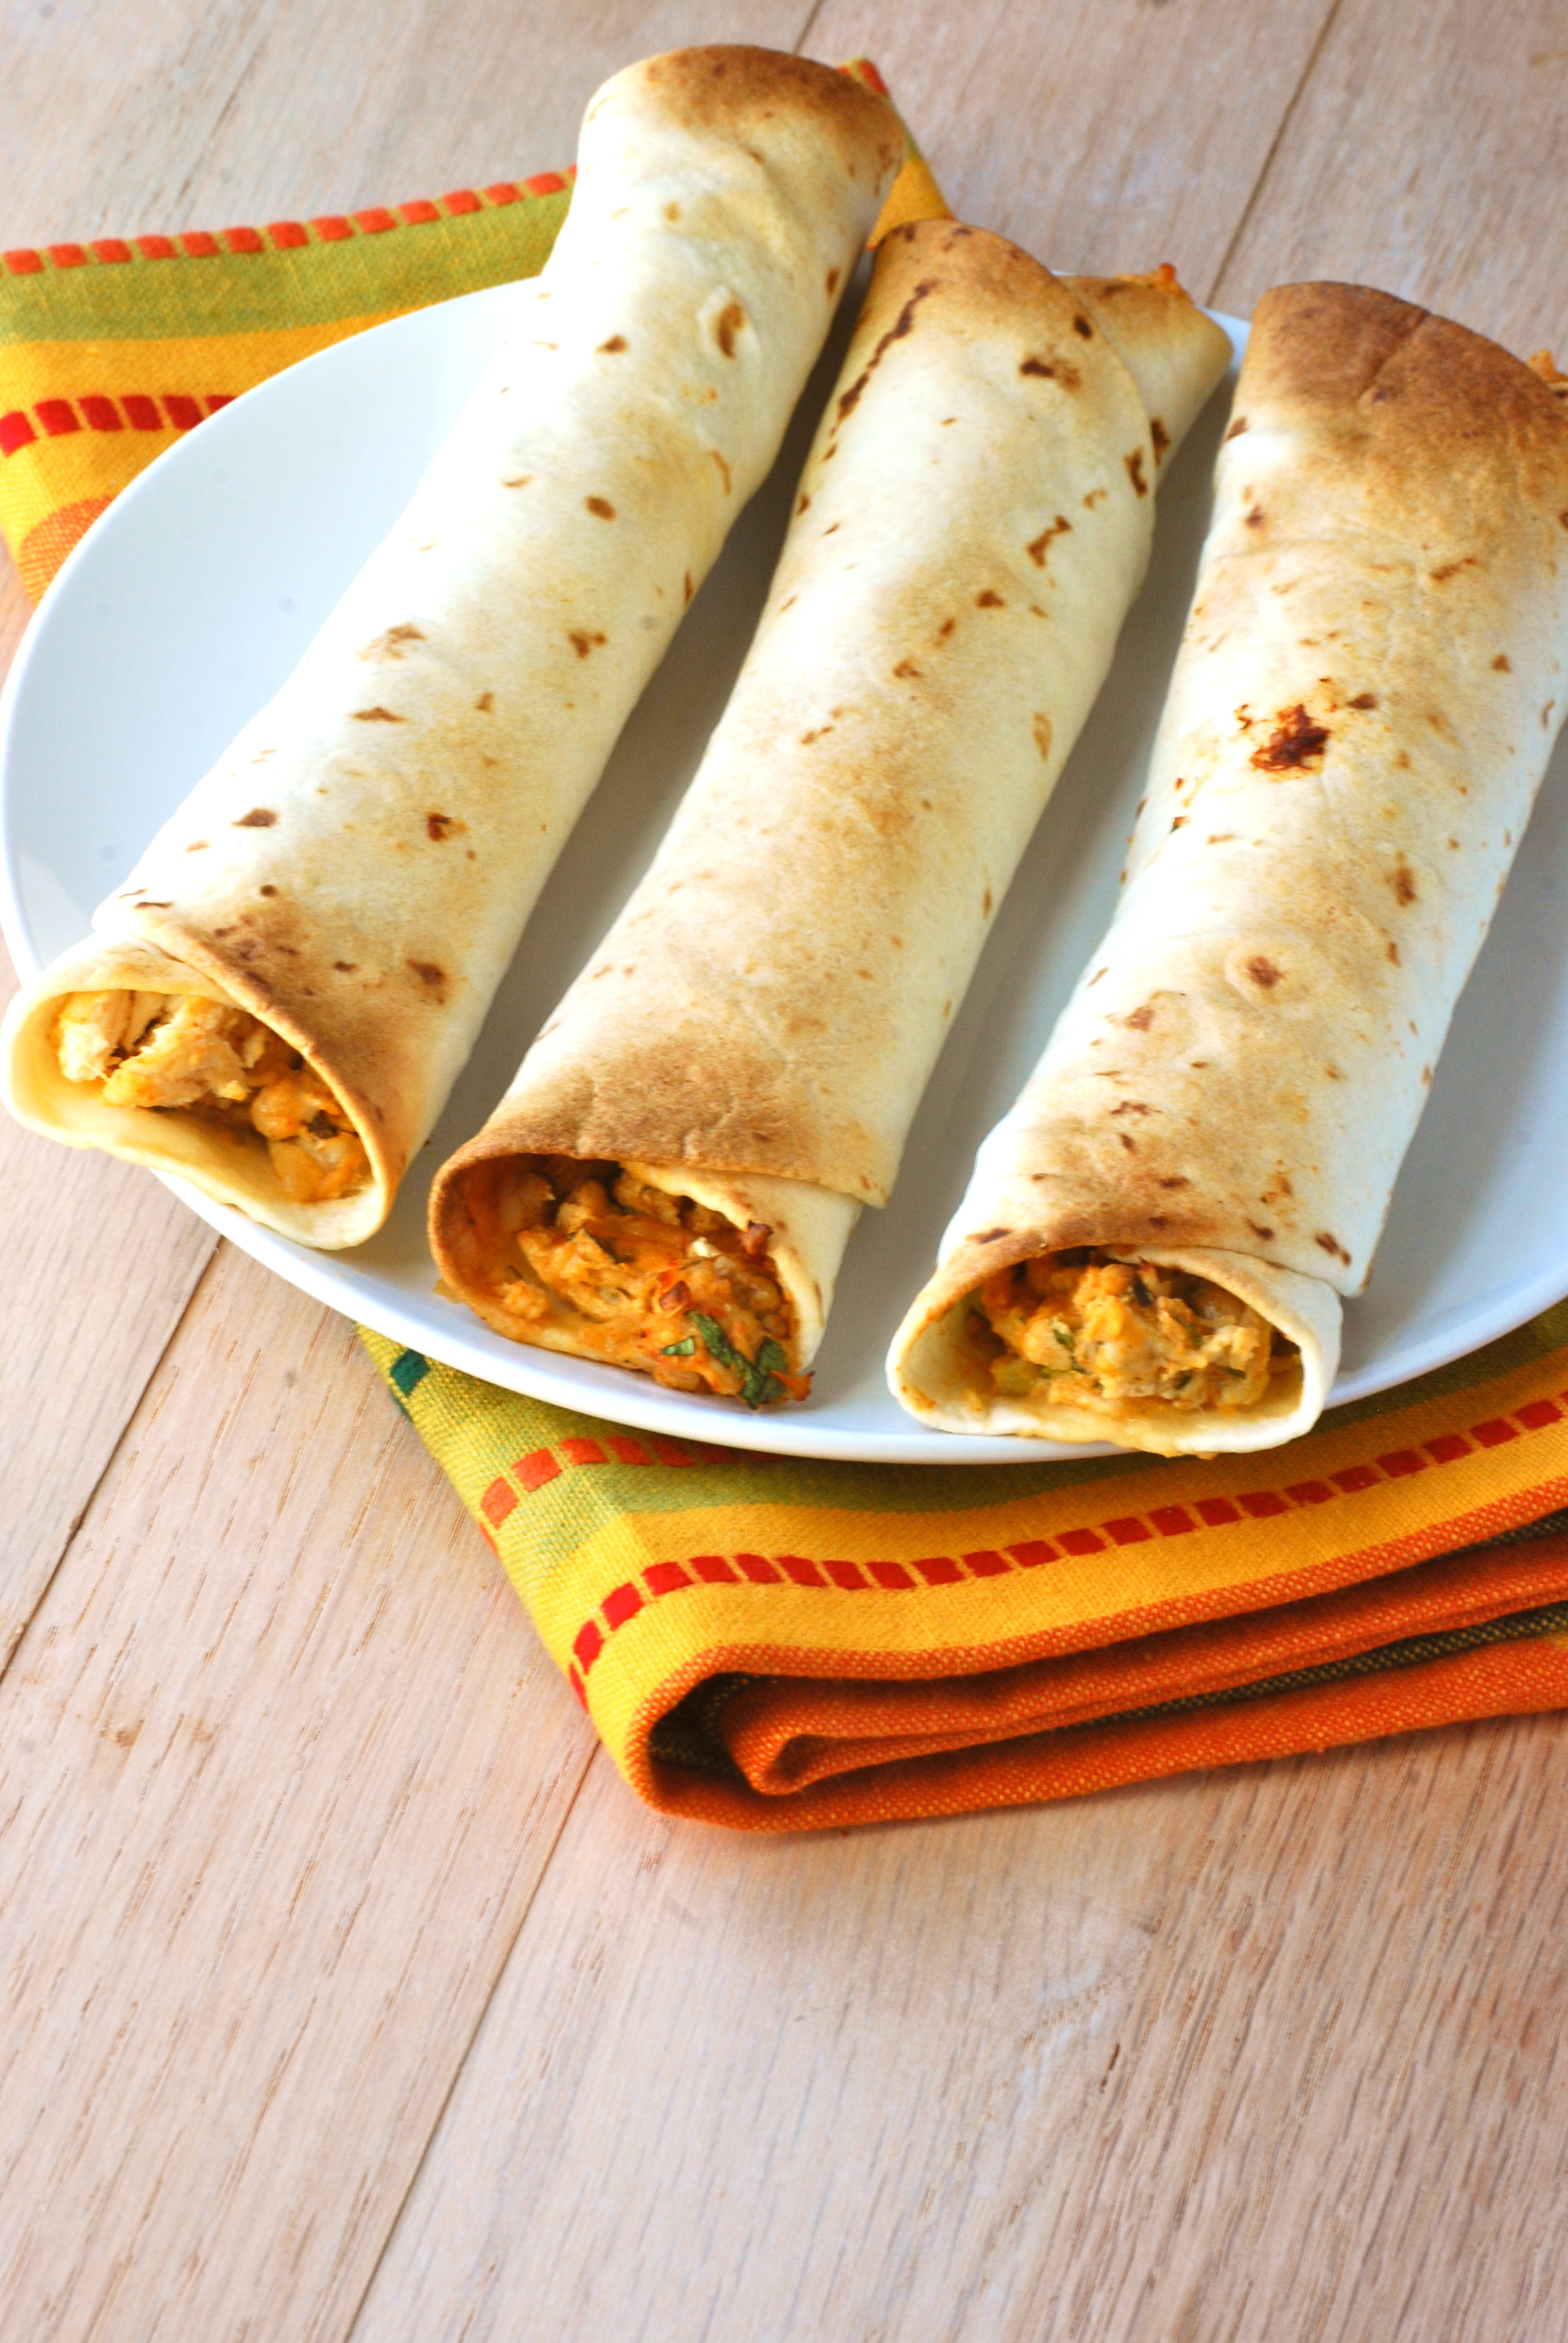 Baked Creamy Chicken Taquitos - Macaroni and Cheesecake